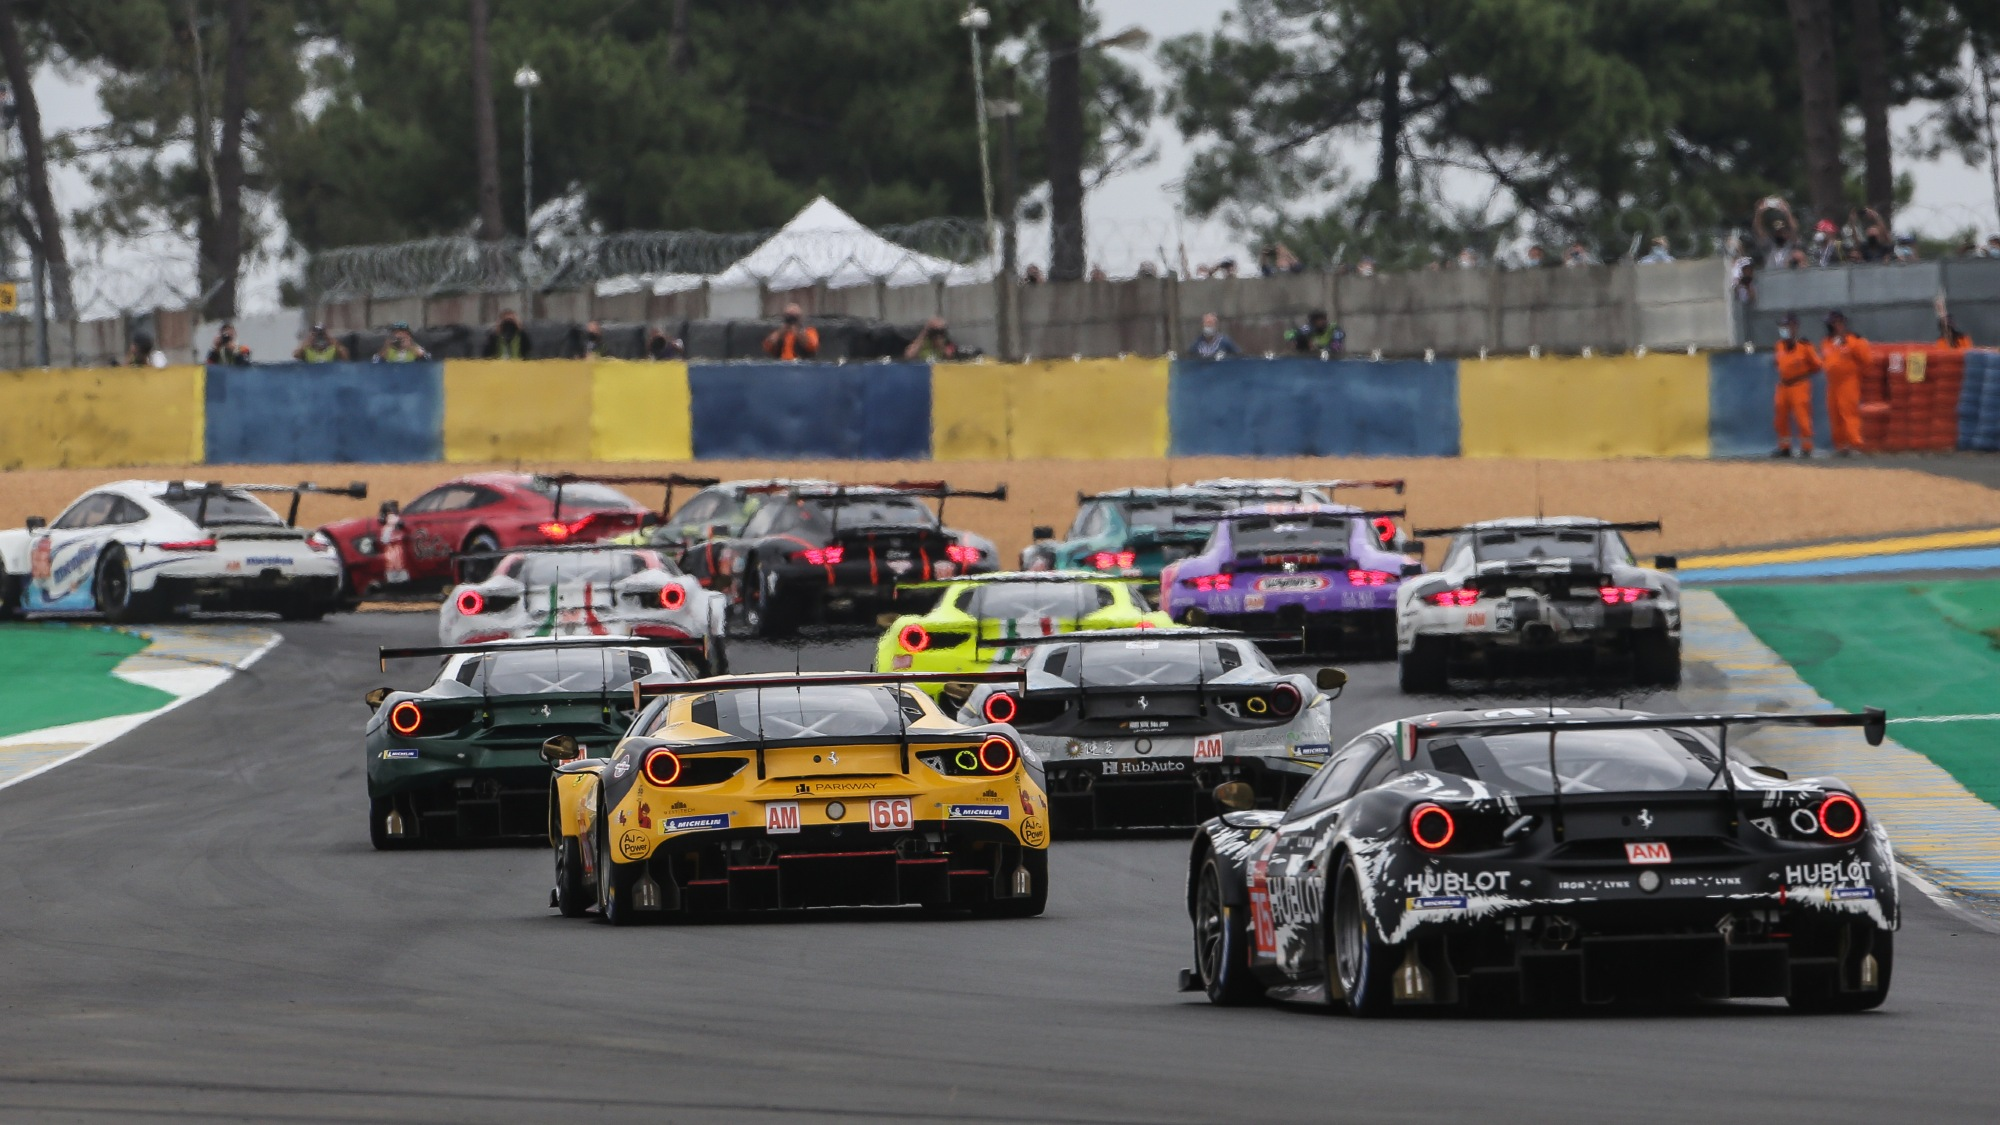 Will GT3 regulations breathe life into sports car racing at Le Mans?